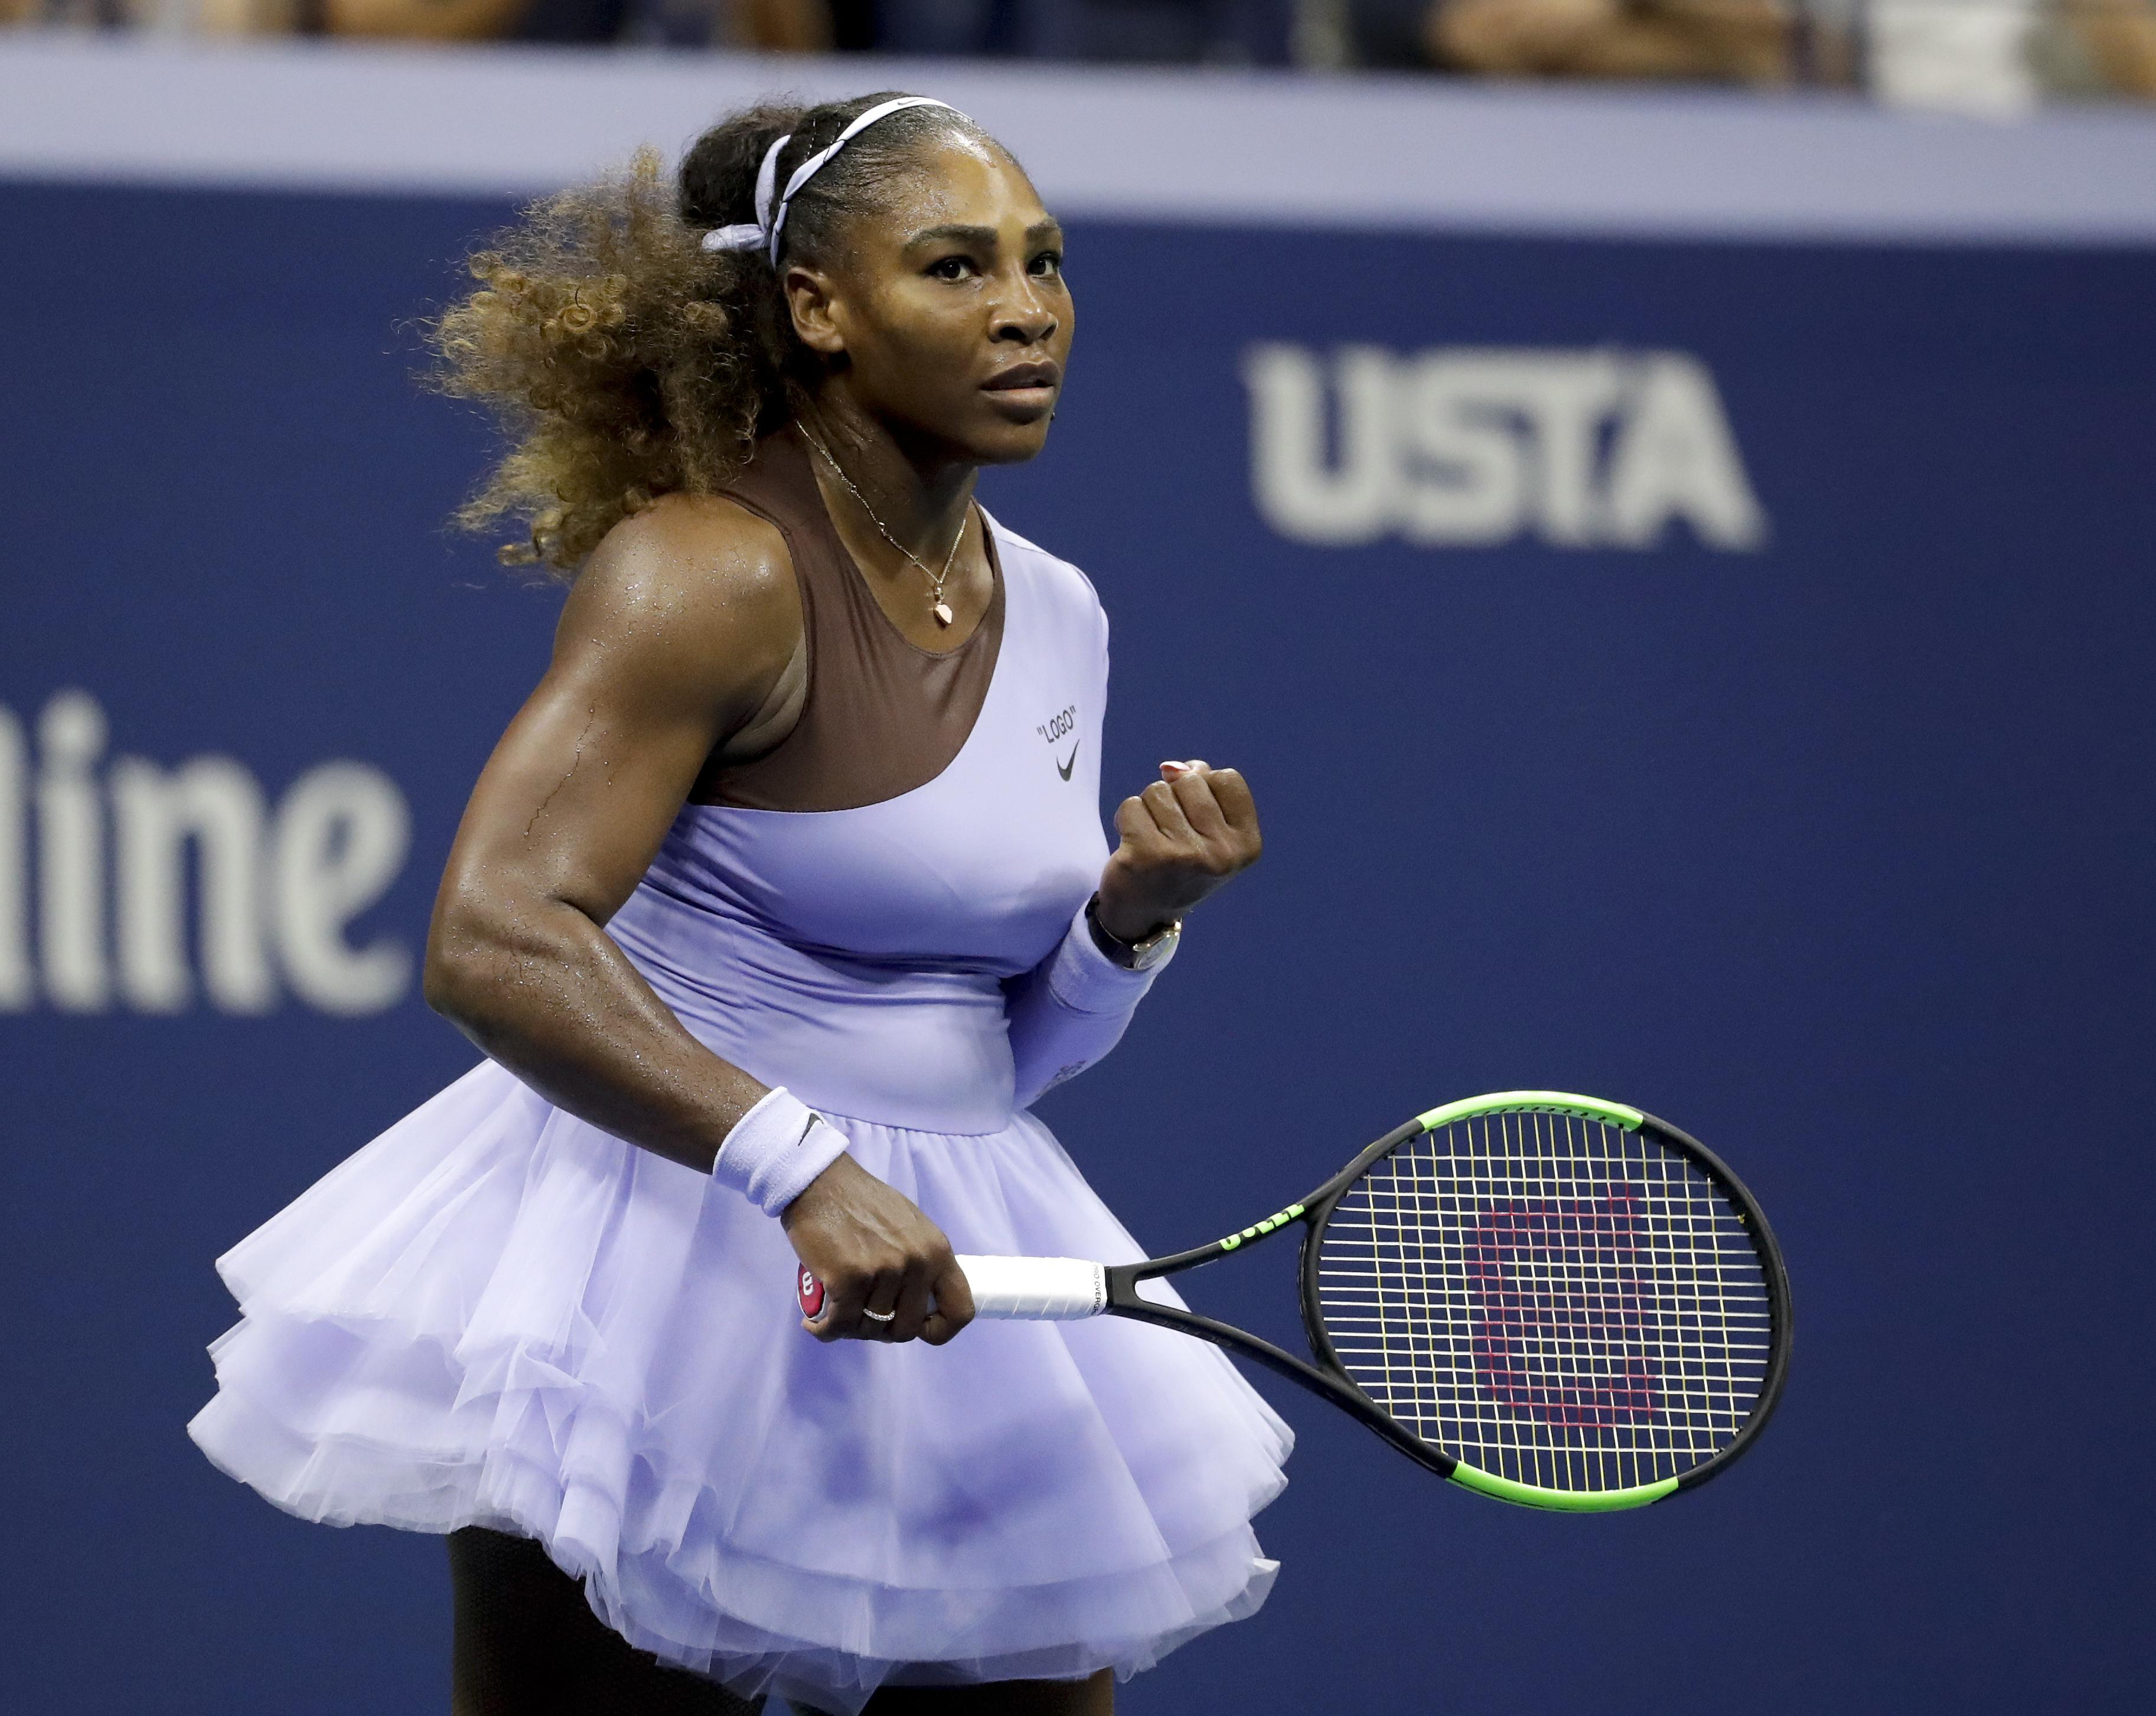 Williams' opponent Osaka was just one when Serena won her first Grand Slam title back in 1999